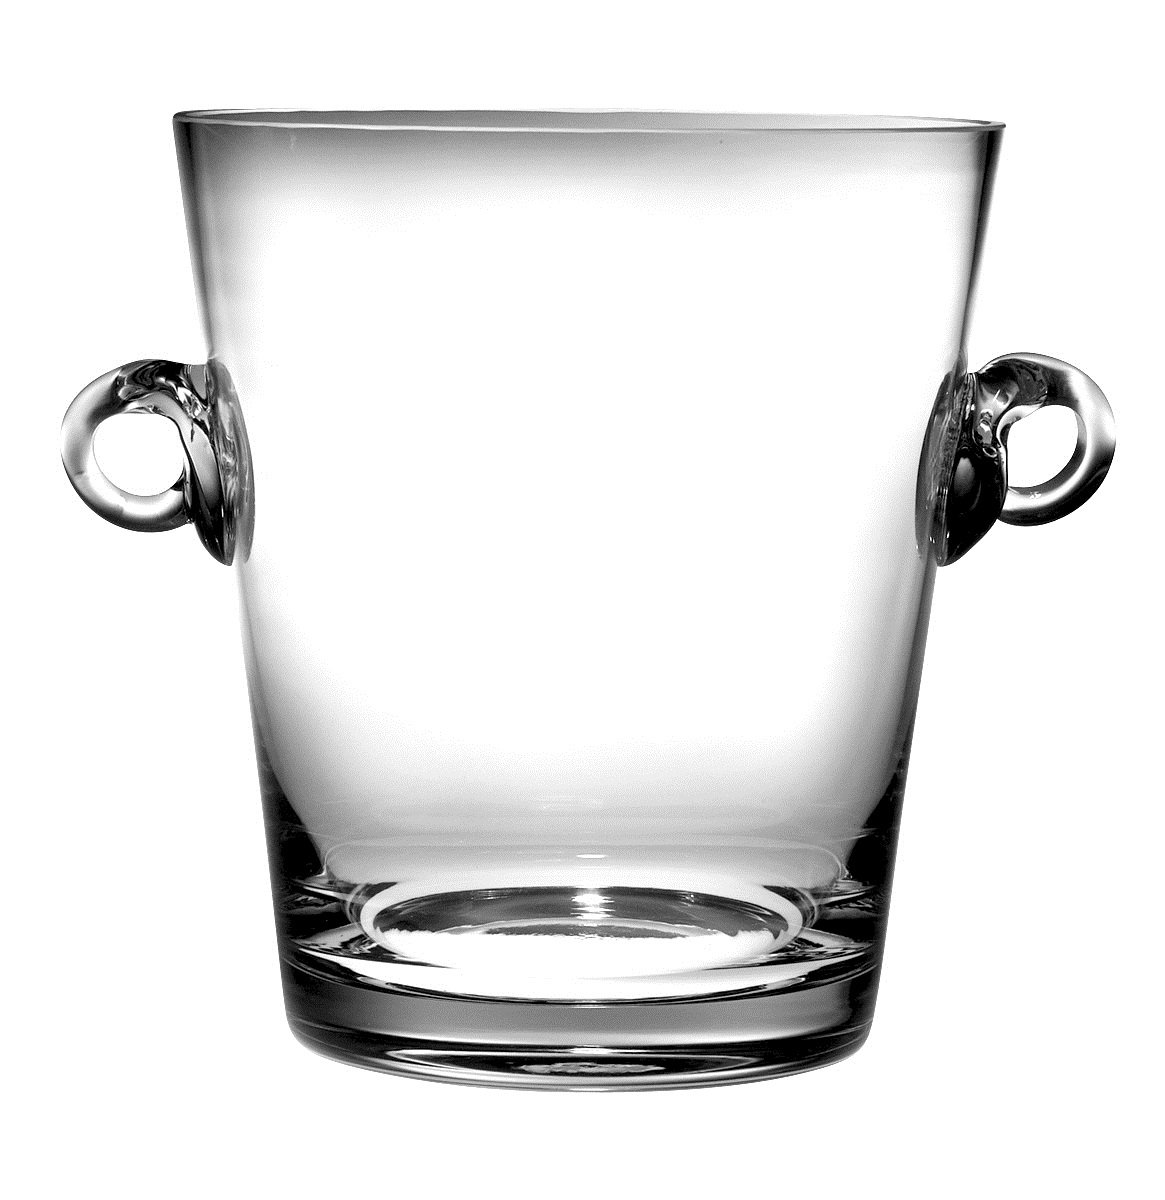 Barski -Glass- Ice Bucket- Wine Cooler - 7.25''H Glass - with 2 handles - Clear - Made in Europe